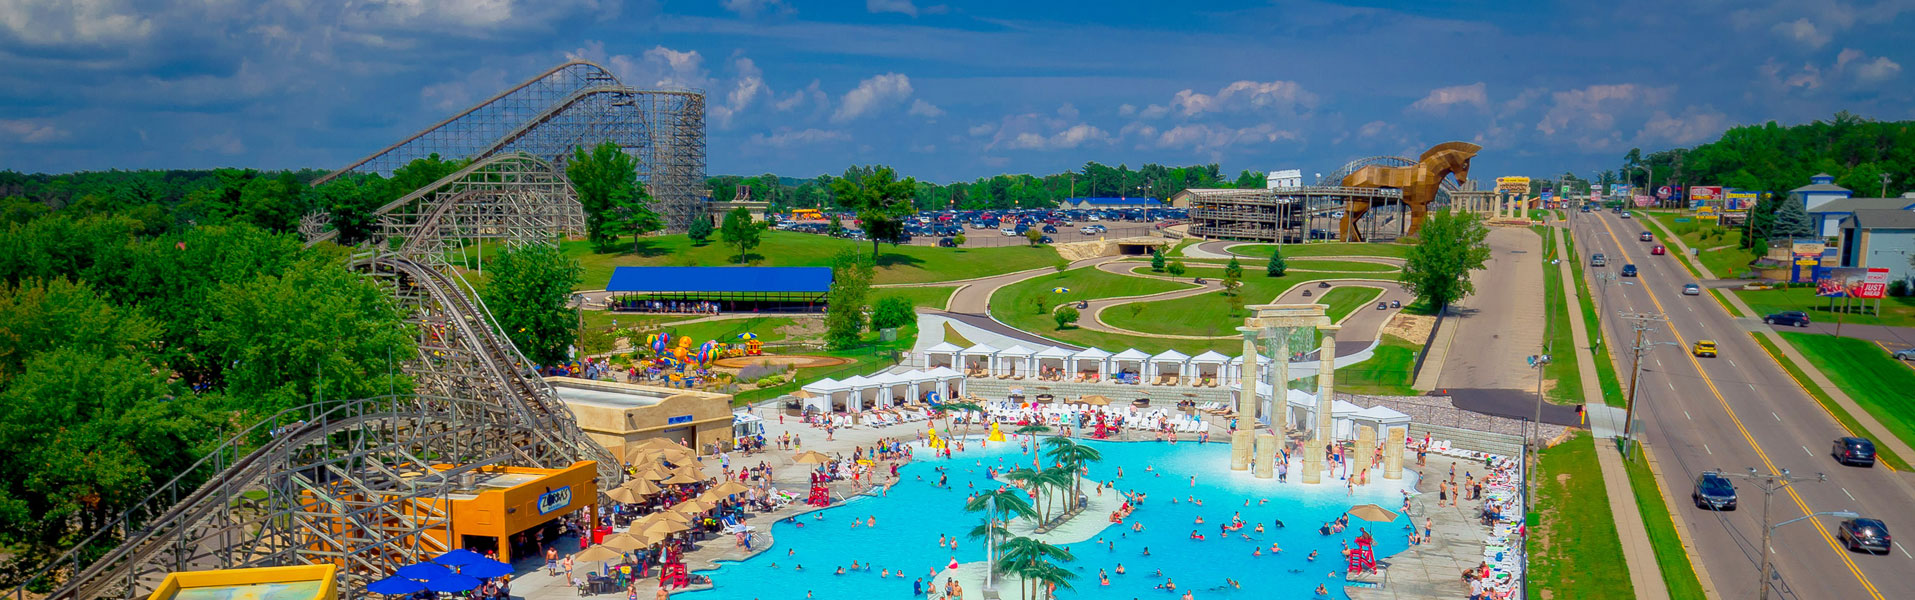 Mt. Olympus Water and Theme Park is a theme park and water park complex in Wisconsin Dells, datingcafeinfohs.cf Olympus consists of three areas of the park: Zeus' Playground (outdoor theme park), Neptune's Water Kingdom (outdoor waterpark), and Medusa's indoor water datingcafeinfohs.cf and , the park purchased several smaller nearby independent motels and hotels and renamed them, painting them blue and.